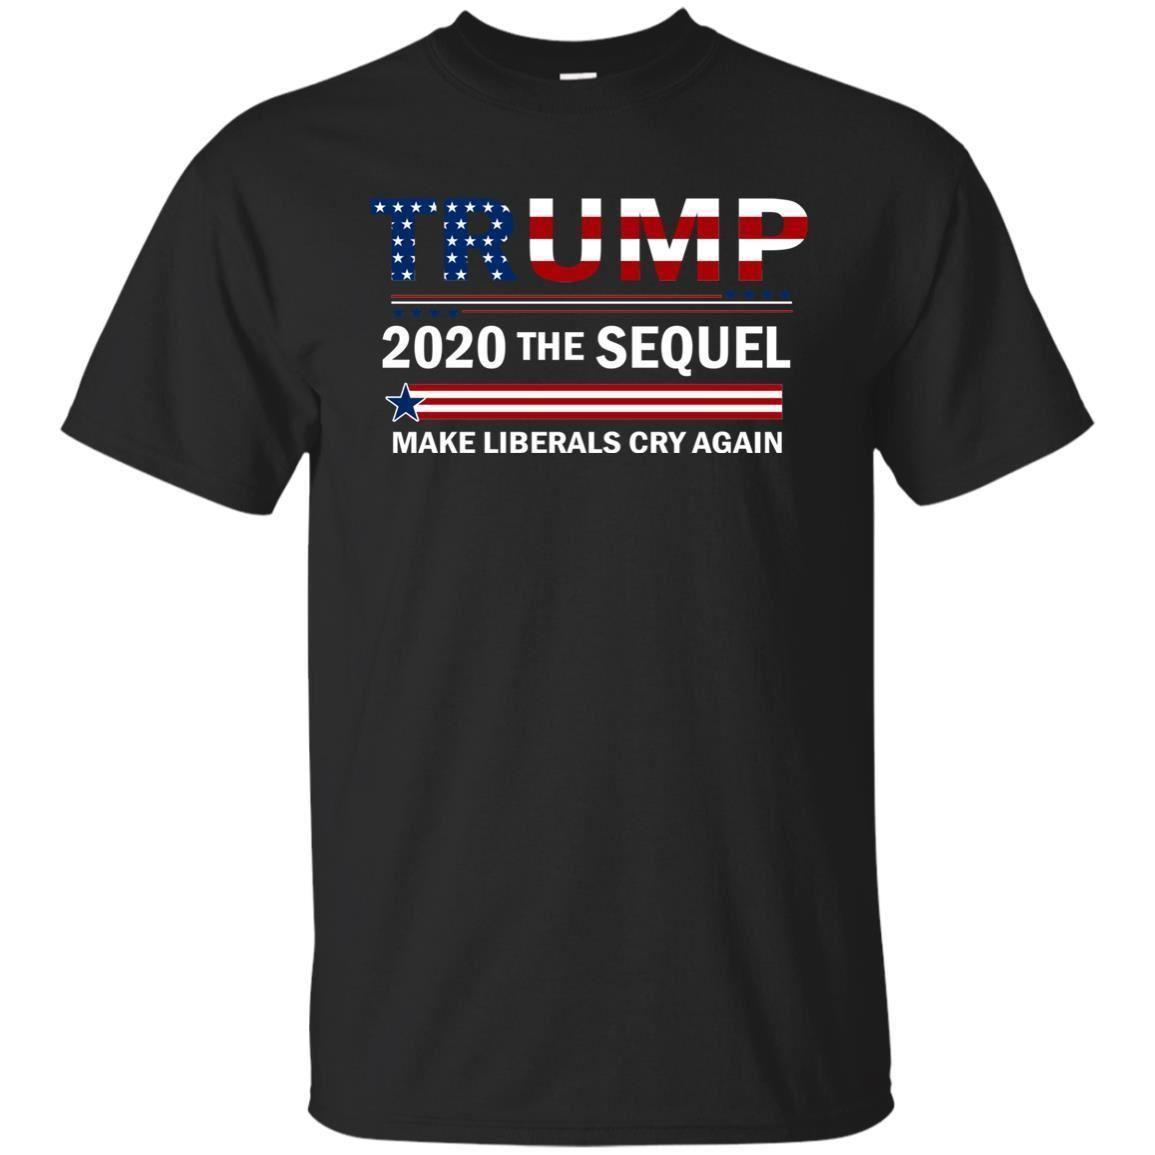 0e365288e Donald Trump President T Shirt Funny 2020 Elections Make Liberals Cry Again  T Shirt Online Buy Cool Tees Online From Happytshirt53, $11.58| DHgate.Com